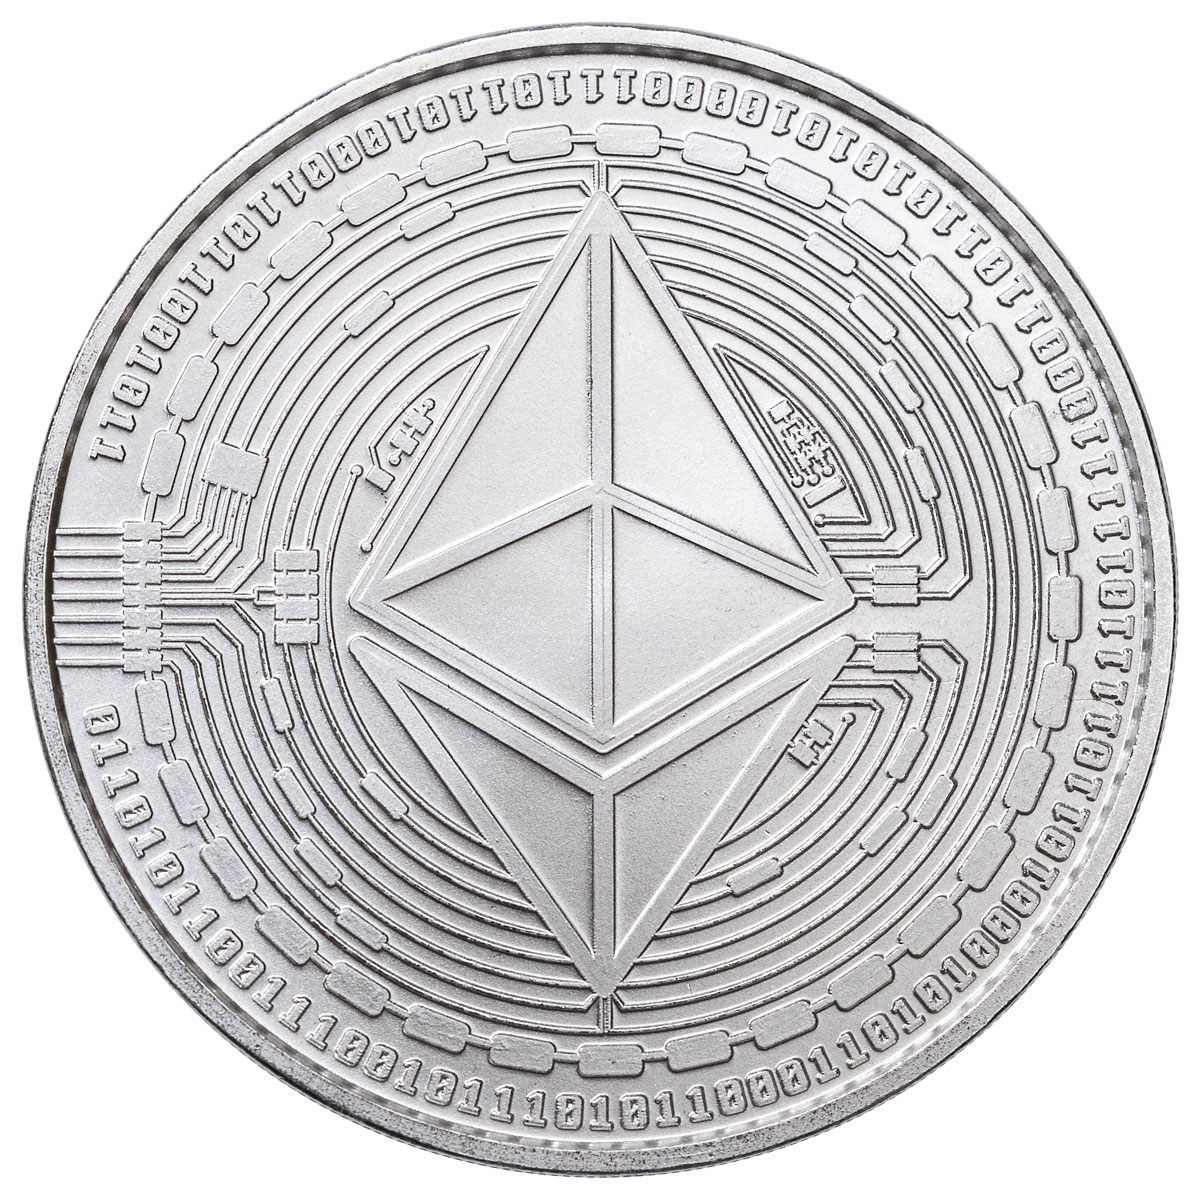 2020 Republic of Chad Fr.5,000 CFA 1 oz Silver Ethereum Crypto Currency BU Coin GEM BU